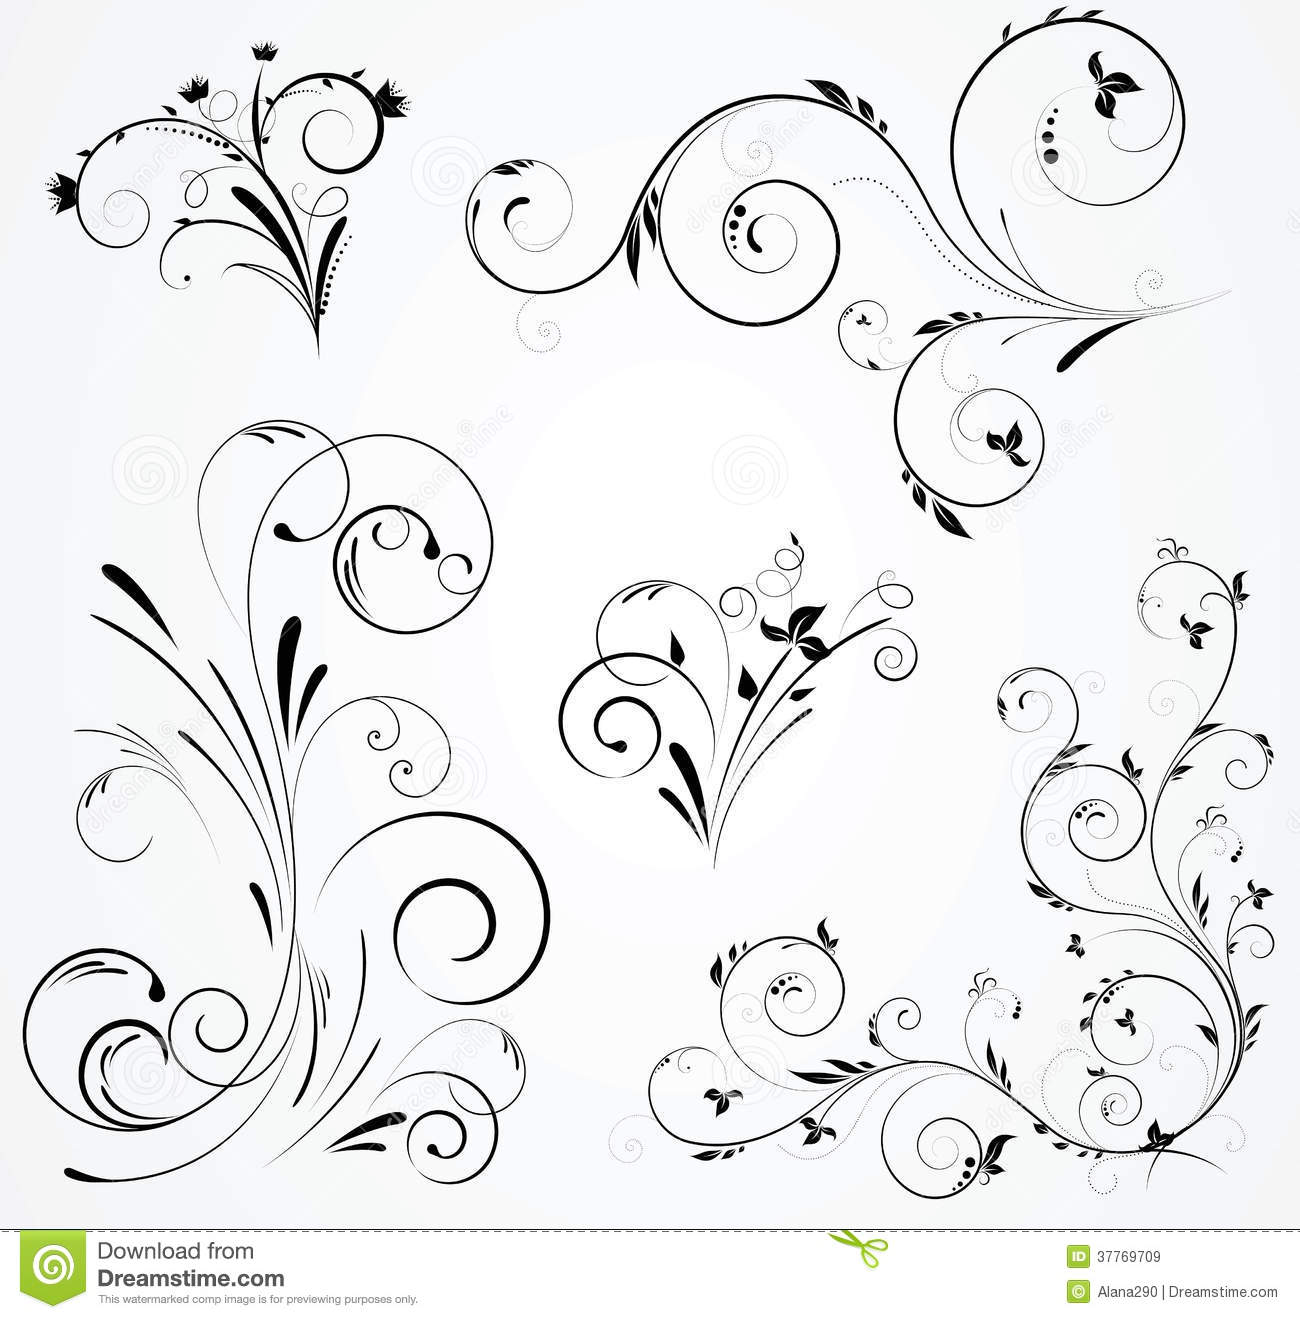 pin elegant swirl design elements royalty free stock photos tattoo on pinterest. Black Bedroom Furniture Sets. Home Design Ideas